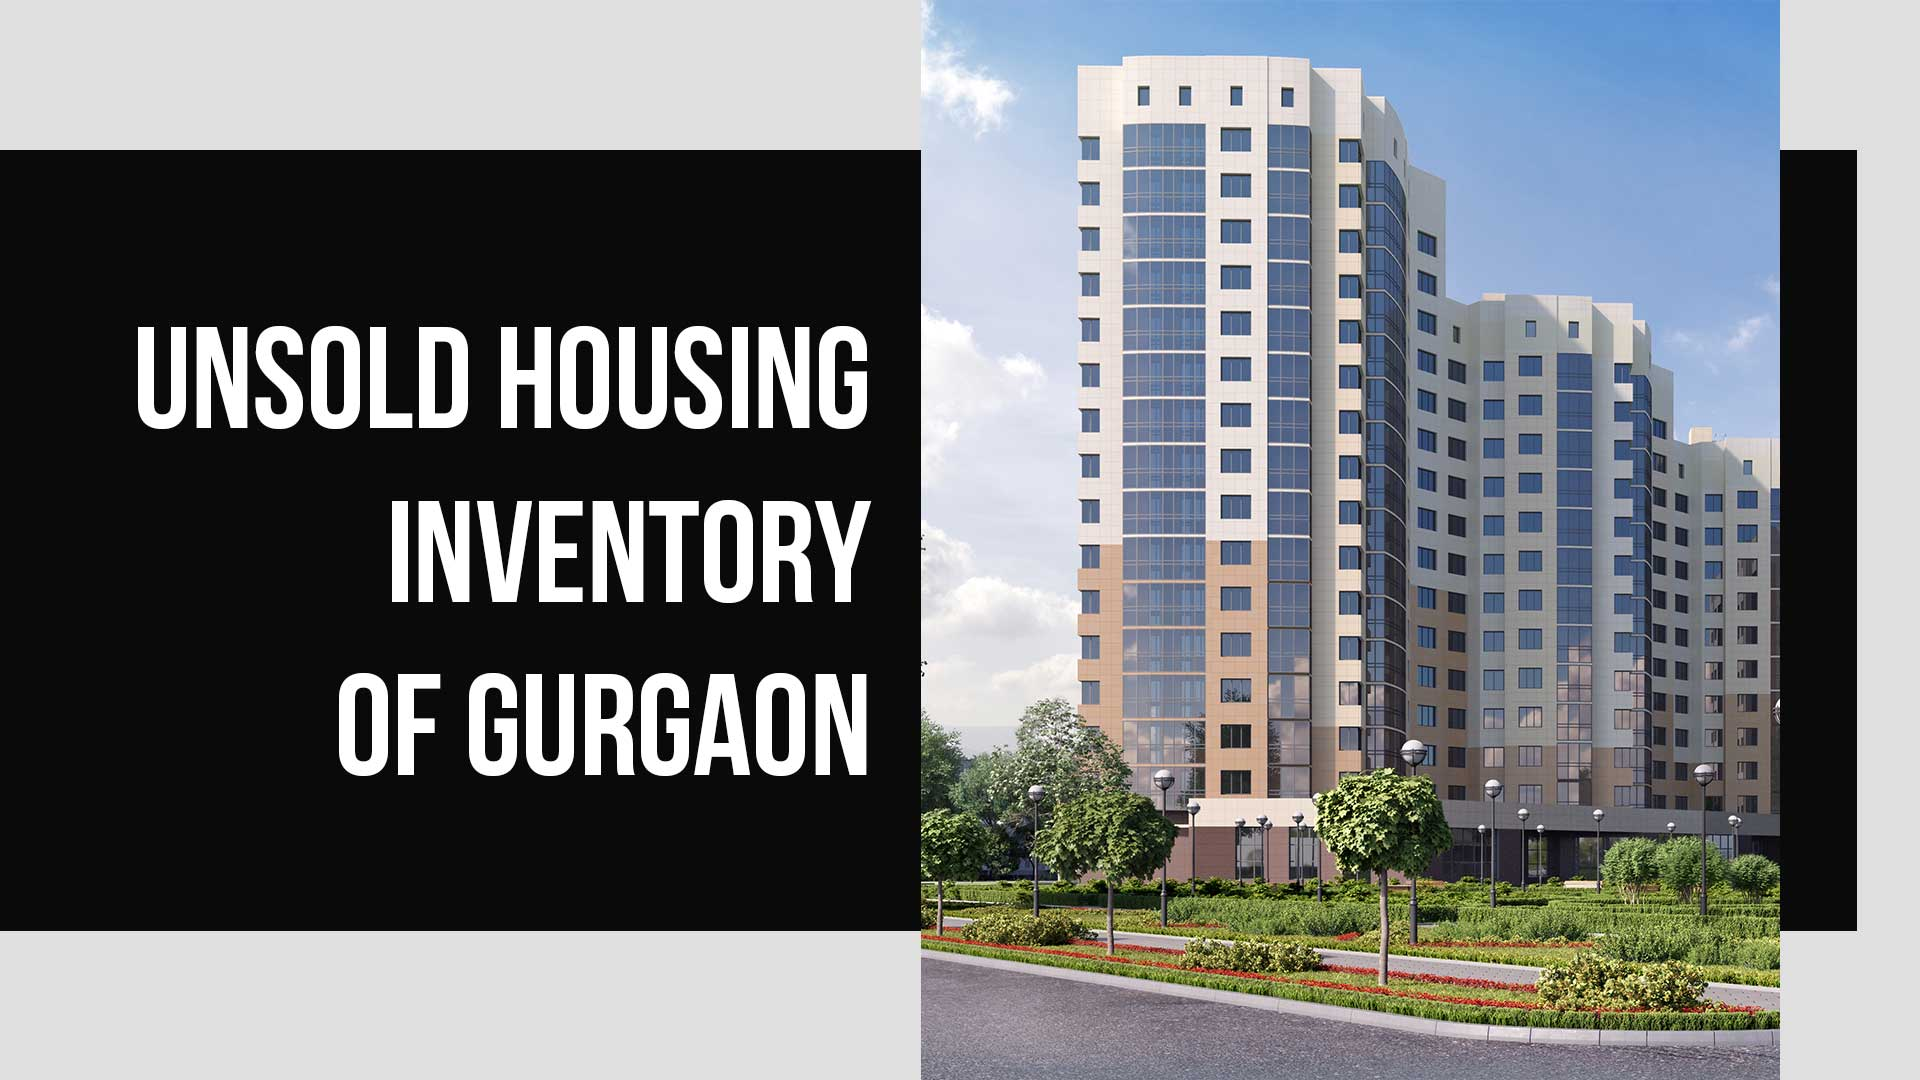 Unsold Housing Inventory - Gurgaon vs other NCR Markets